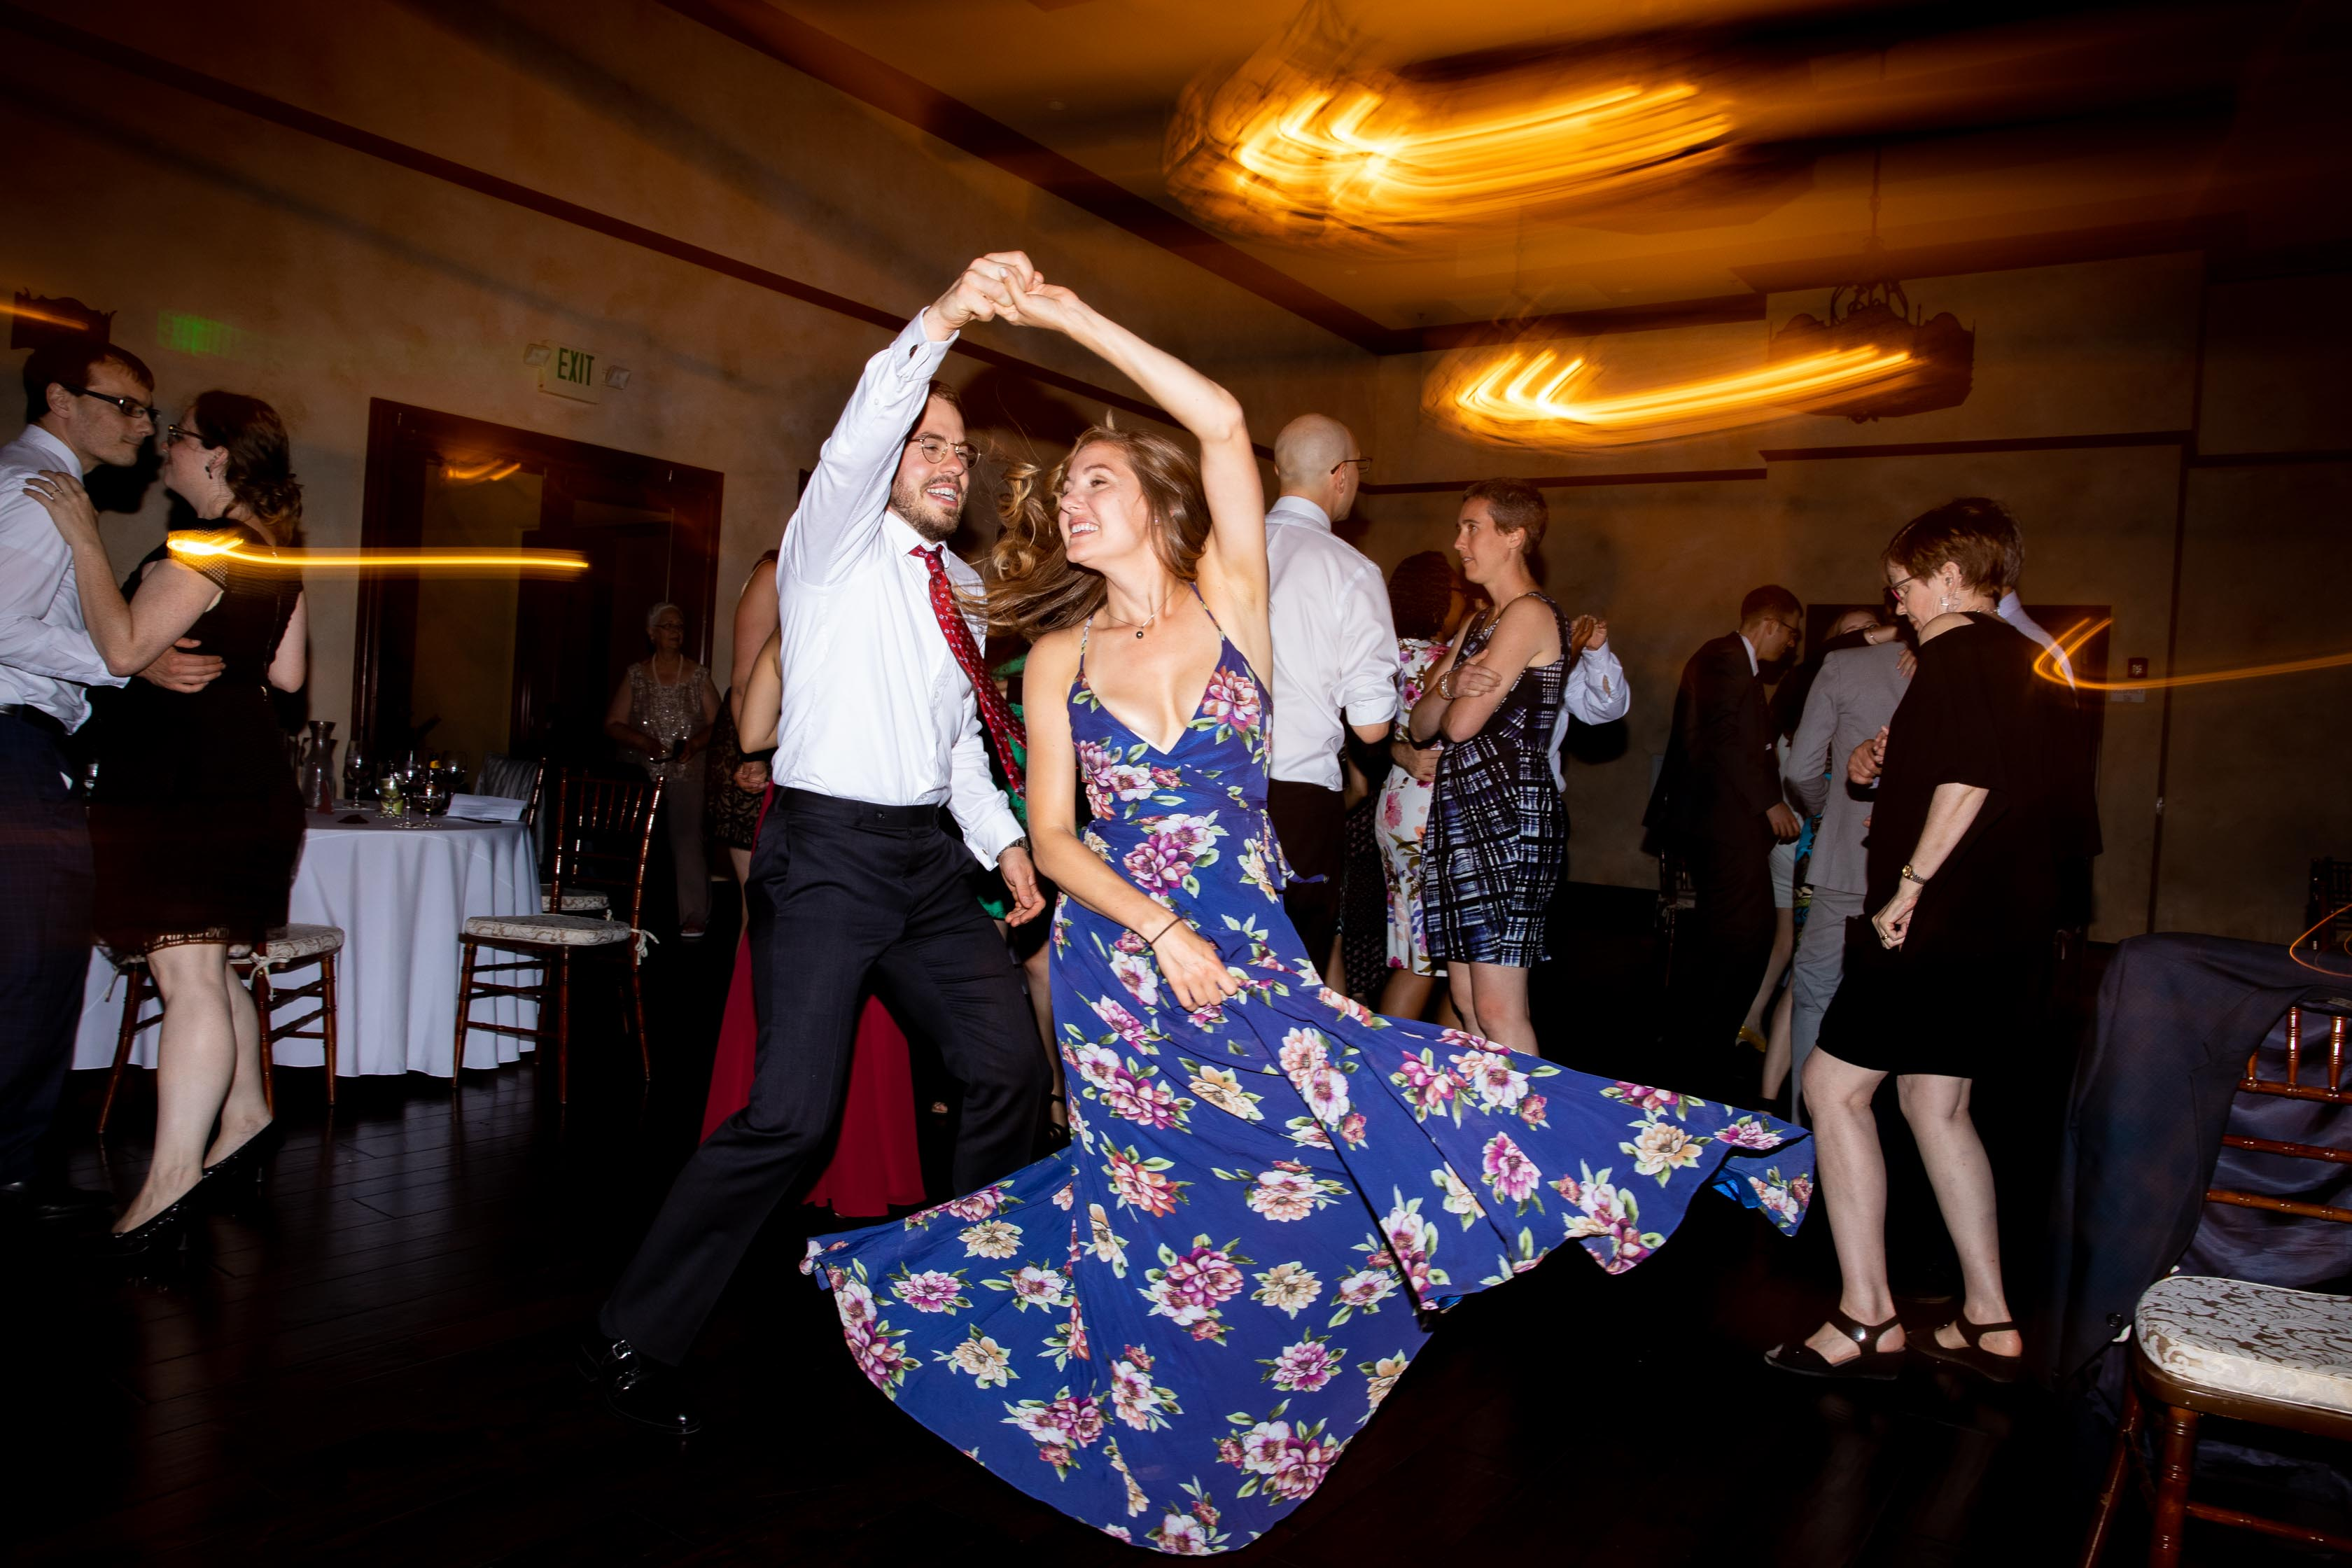 wedding dancing photo girl spinning in flowery dress